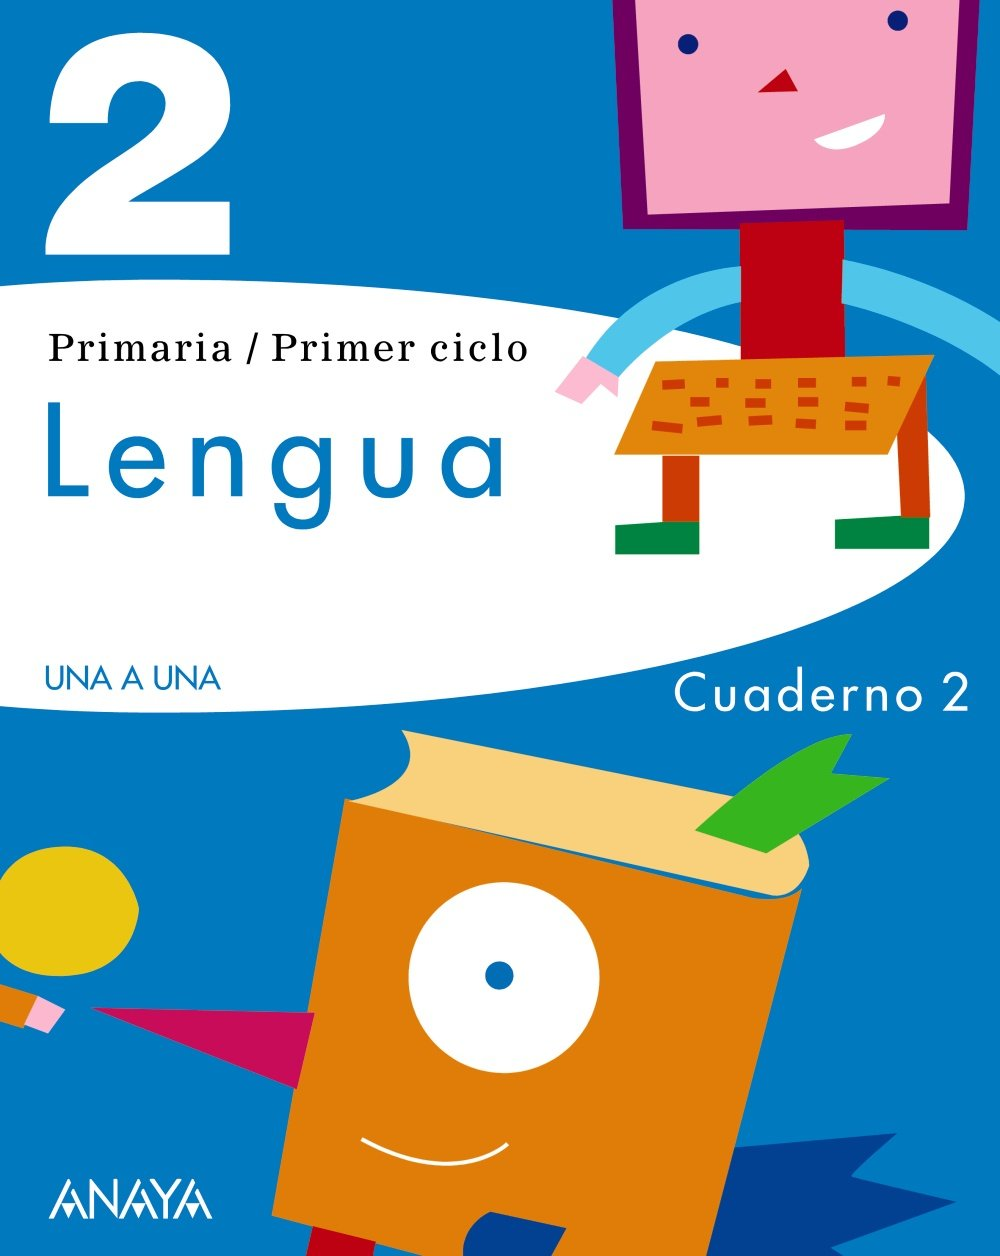 Lengua 2. Cuaderno 2 (Spanish) Paperback – January 1, 1900